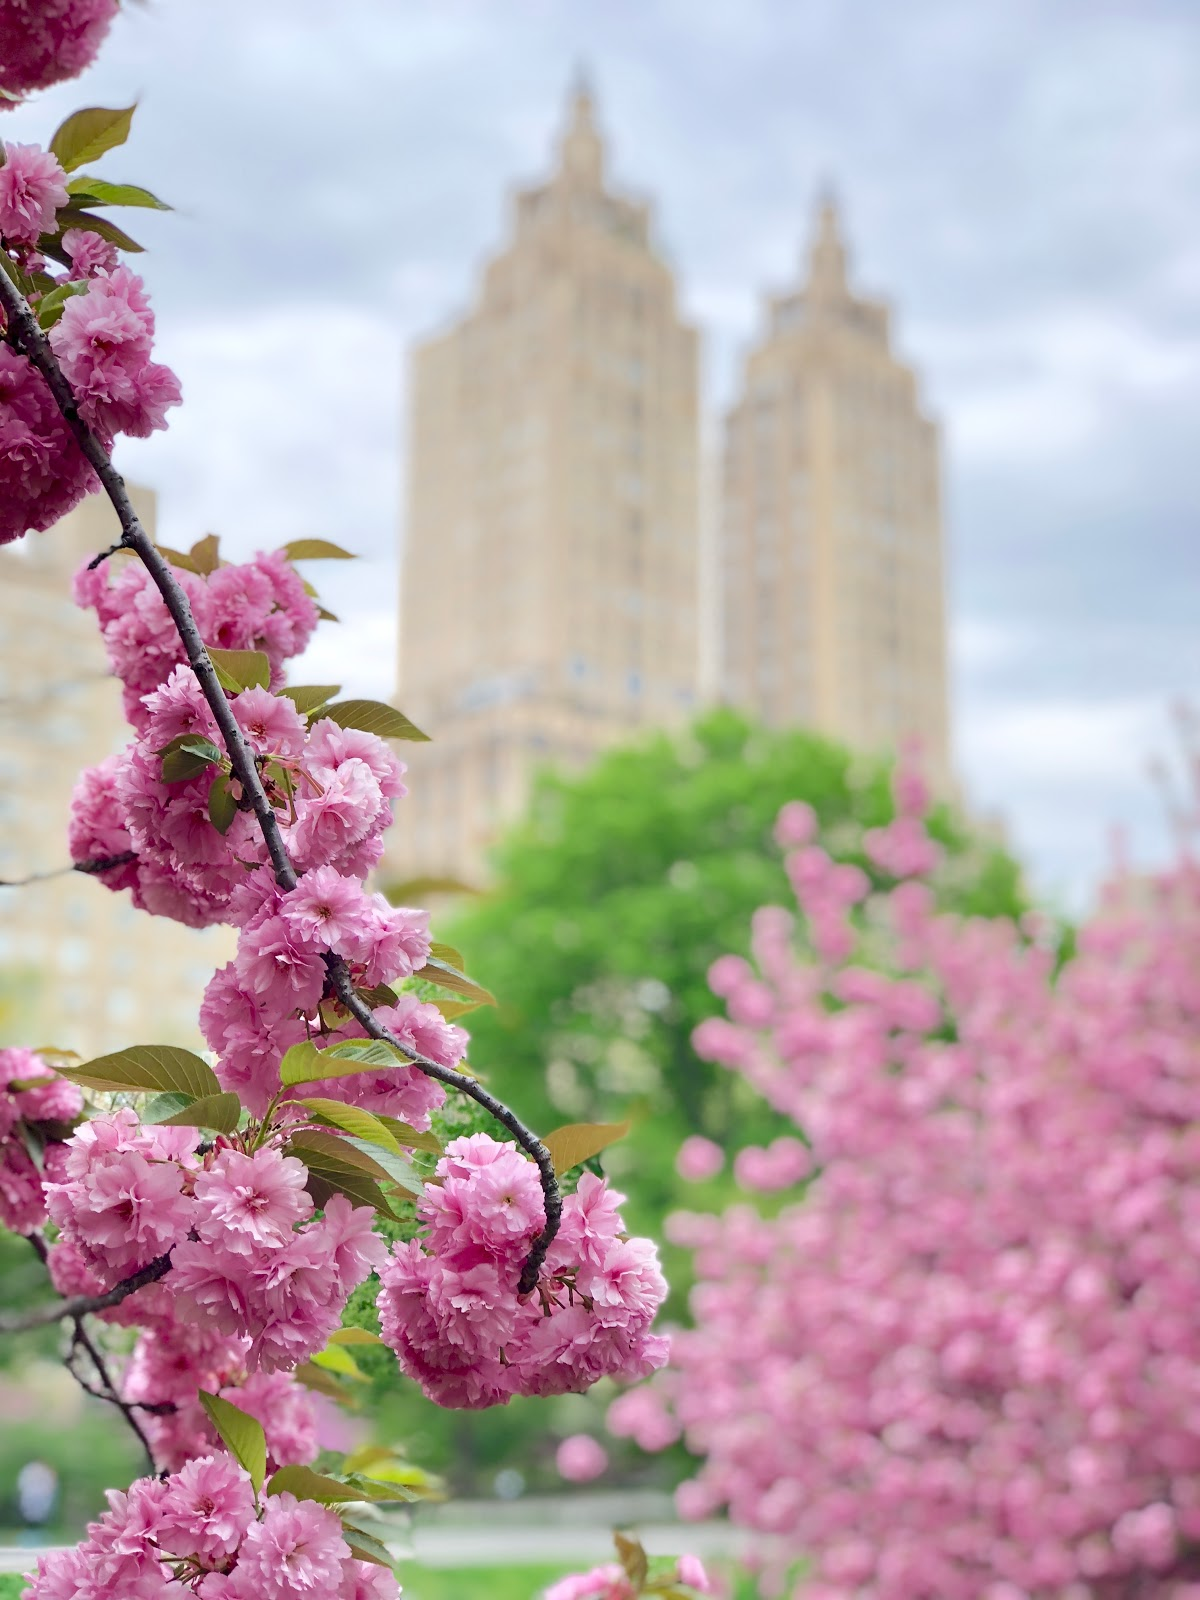 Flowers in Central Park, Spring 2018, New York City, Photos by Jessica Marie Kelley